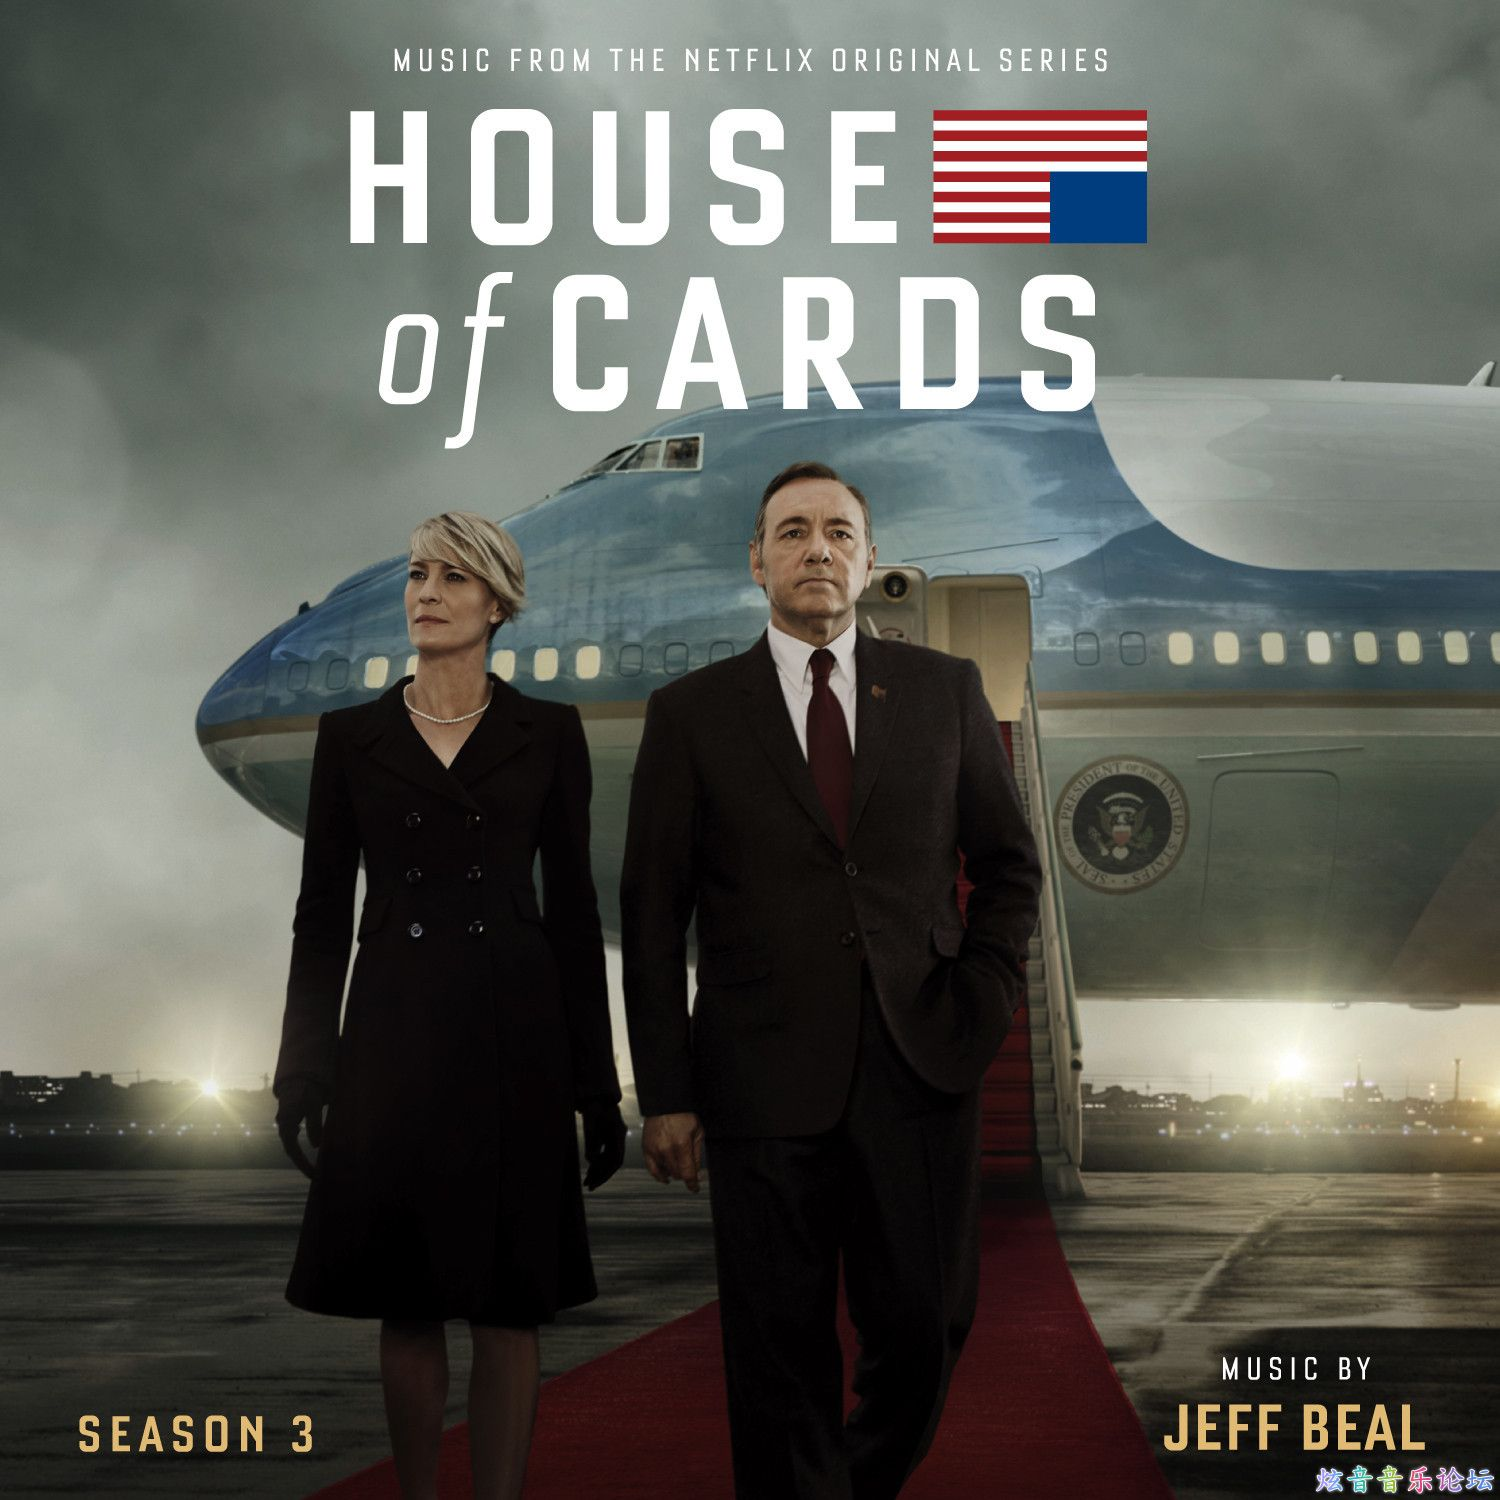 HouseOfCards3_2048x2048.jpg